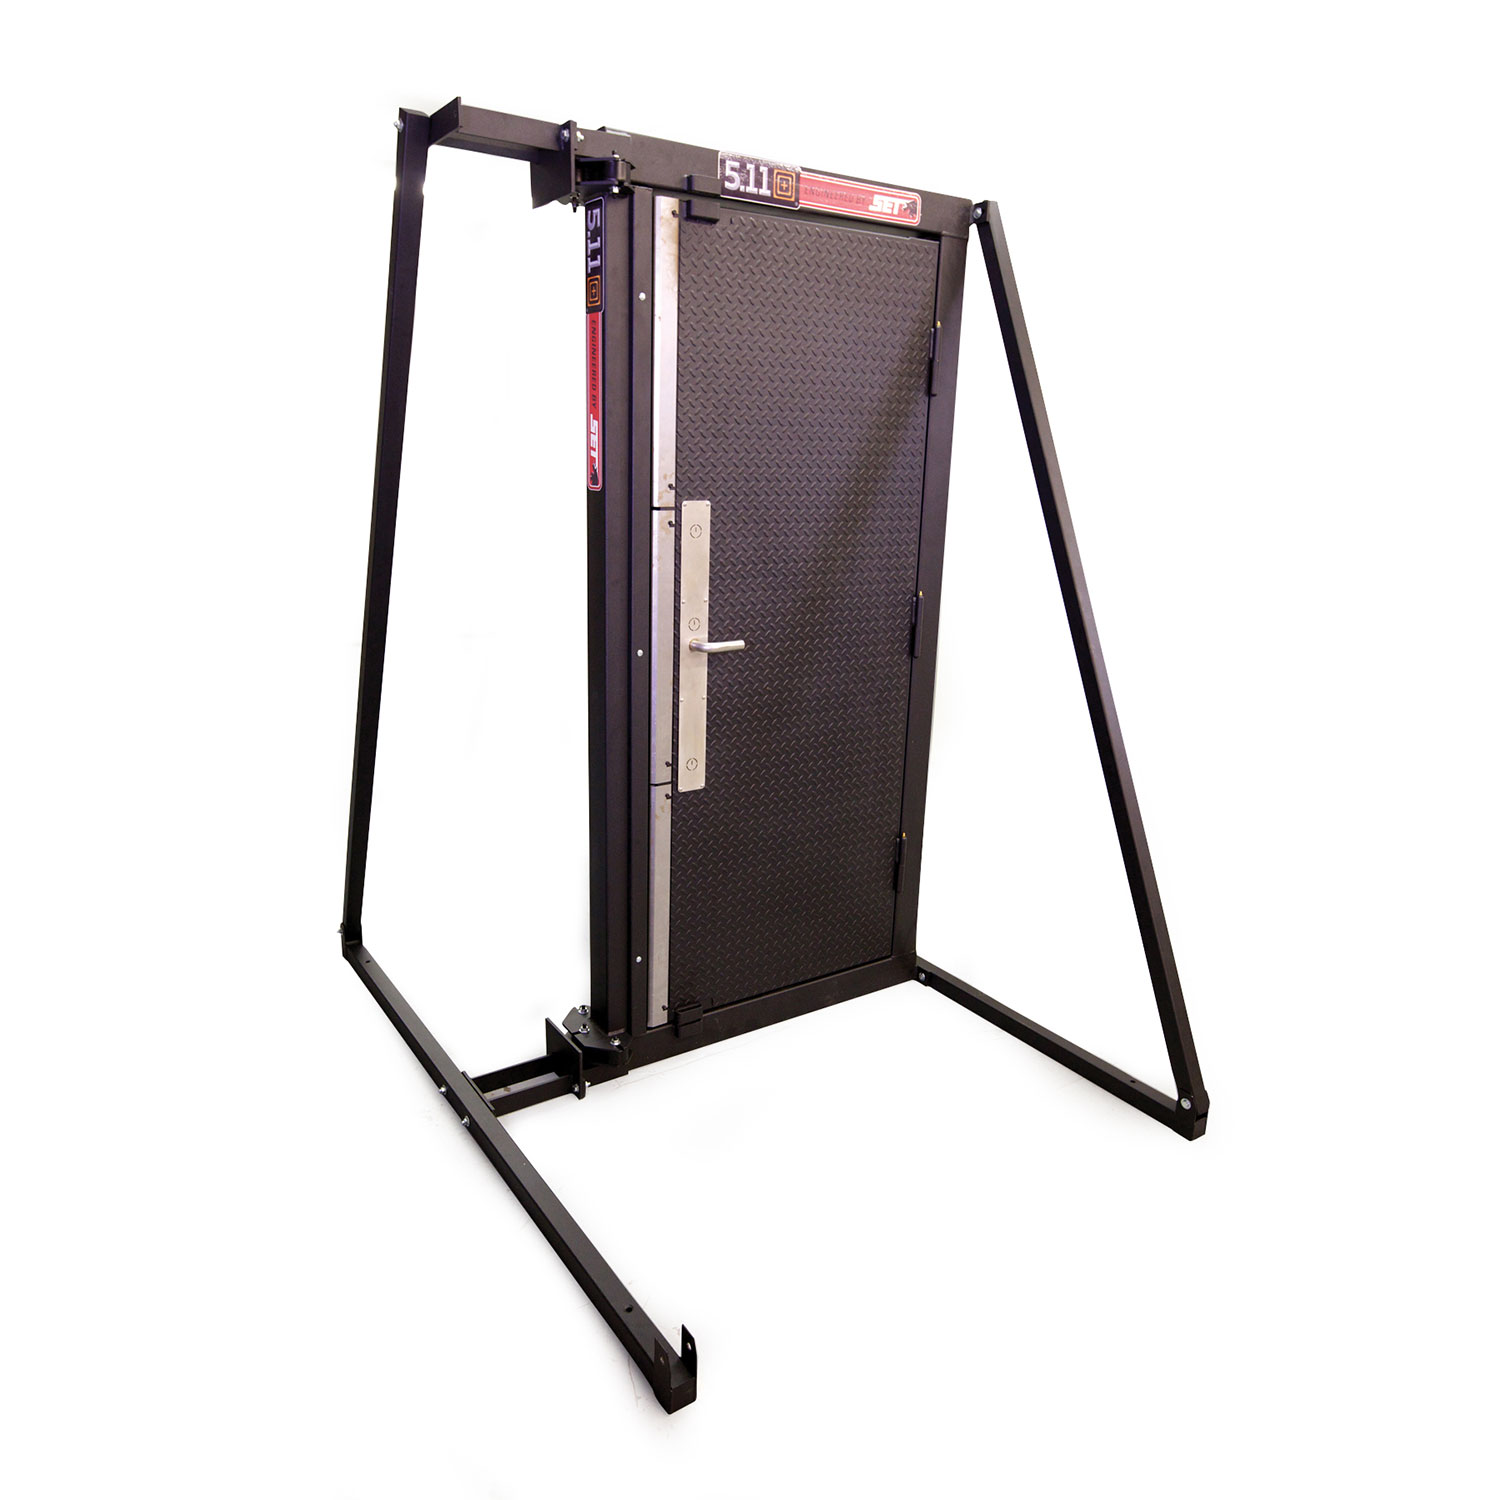 5.11 Tactical MultiPurpose Training Door